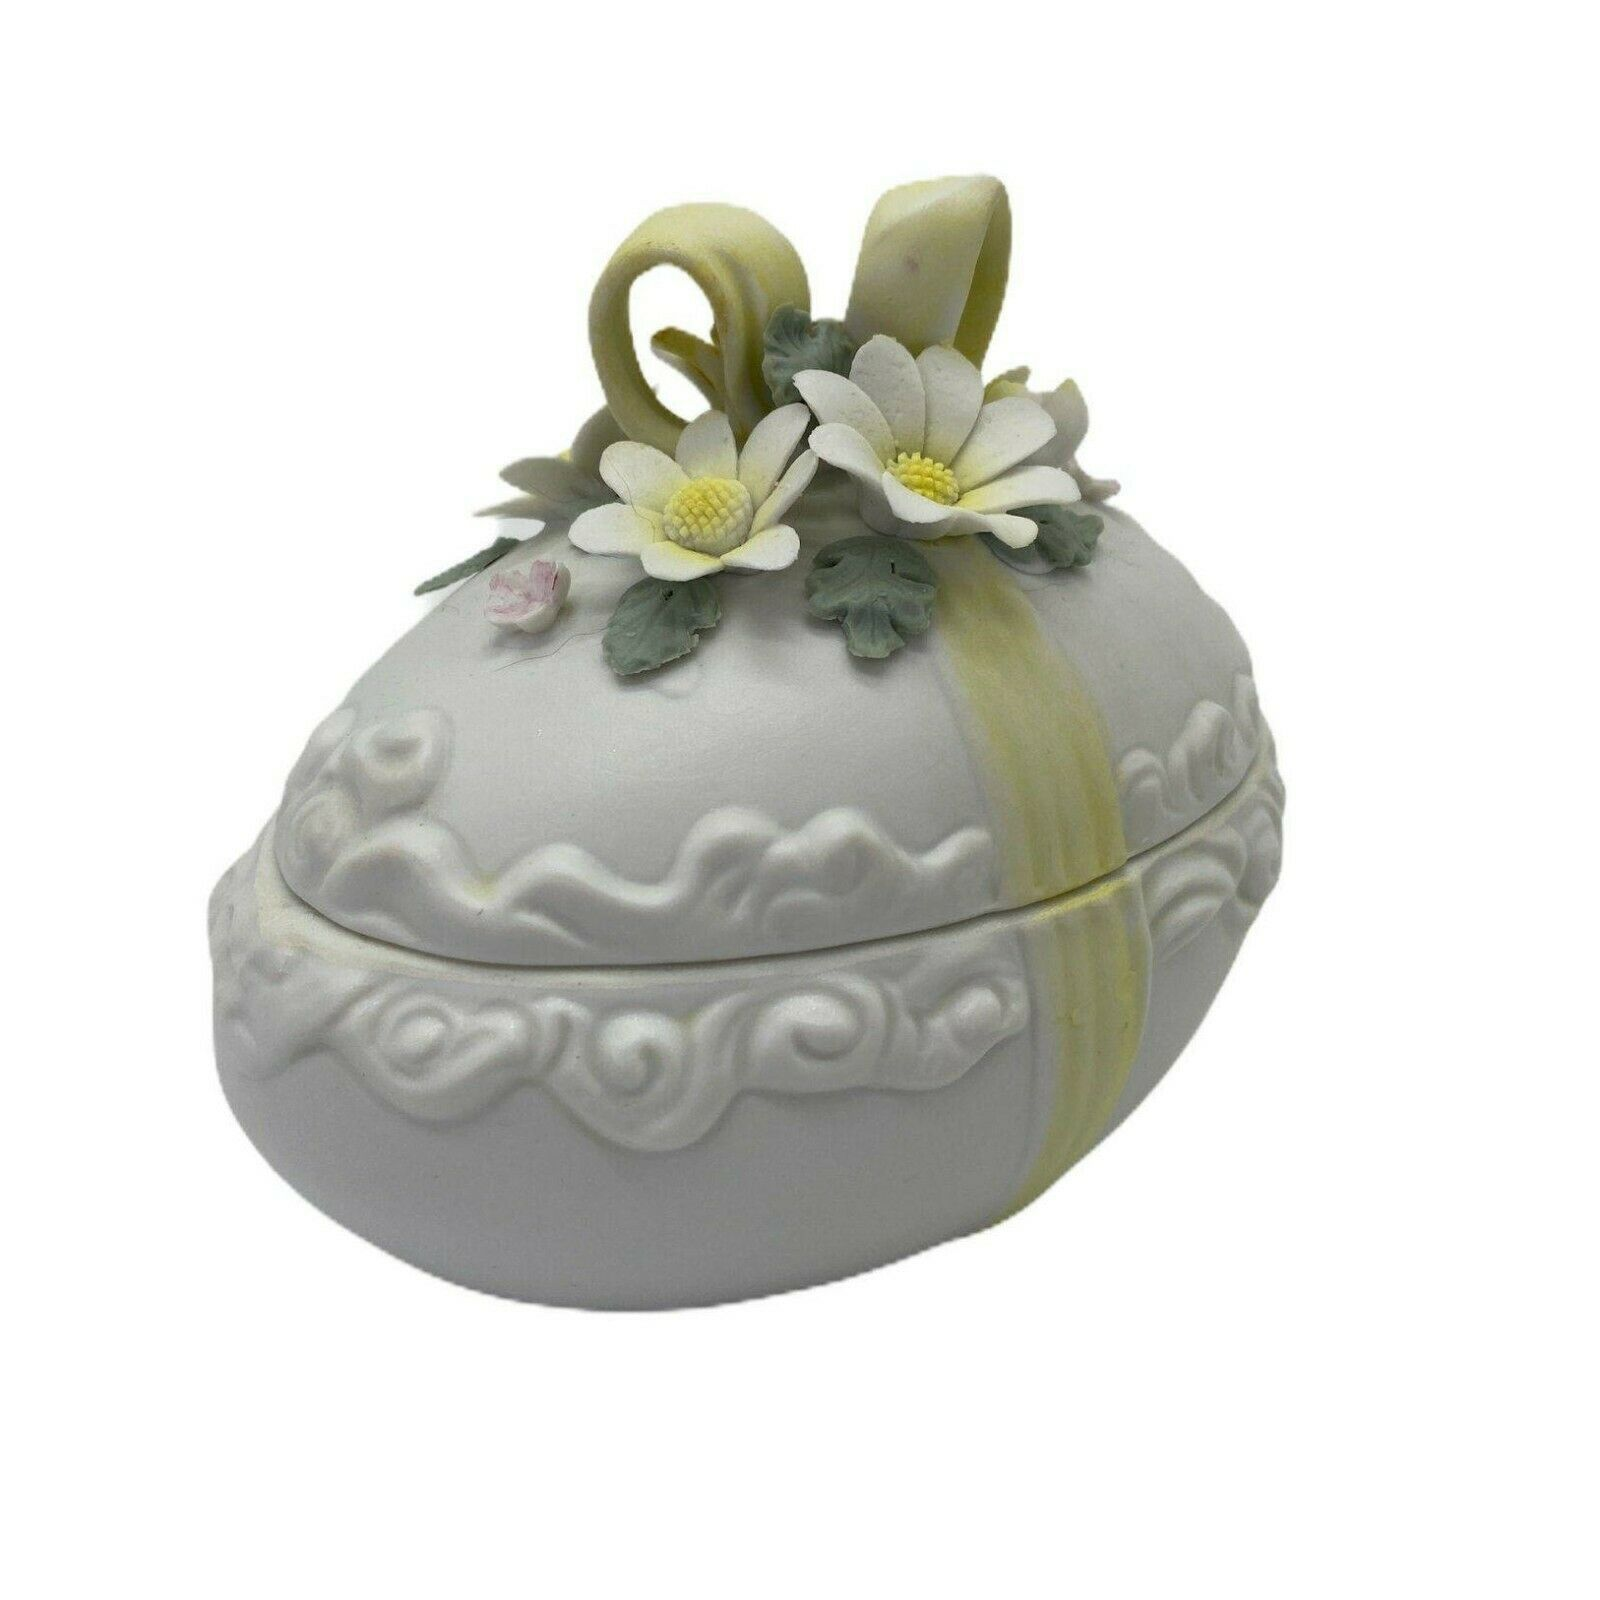 Easter Egg Vintage Lefton 1691 Decorative Trinket Box with Lid - $20.00